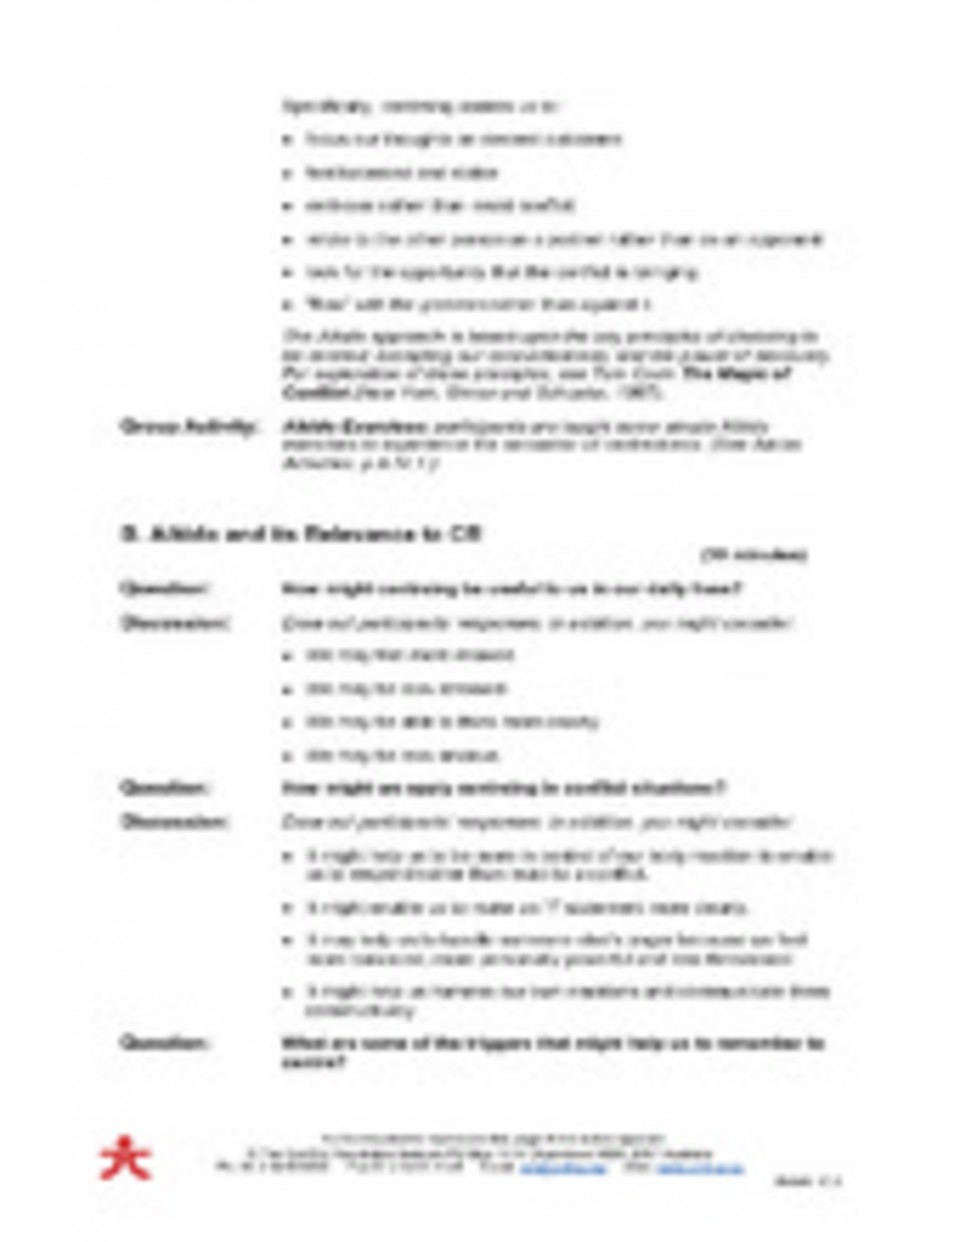 011 Conflict20resolution20class20notes 28058935 Aikido Conflict Resolution Material Part 17page2 Essay Example Formidable Trifles On Gender Roles Pdf Examples 960